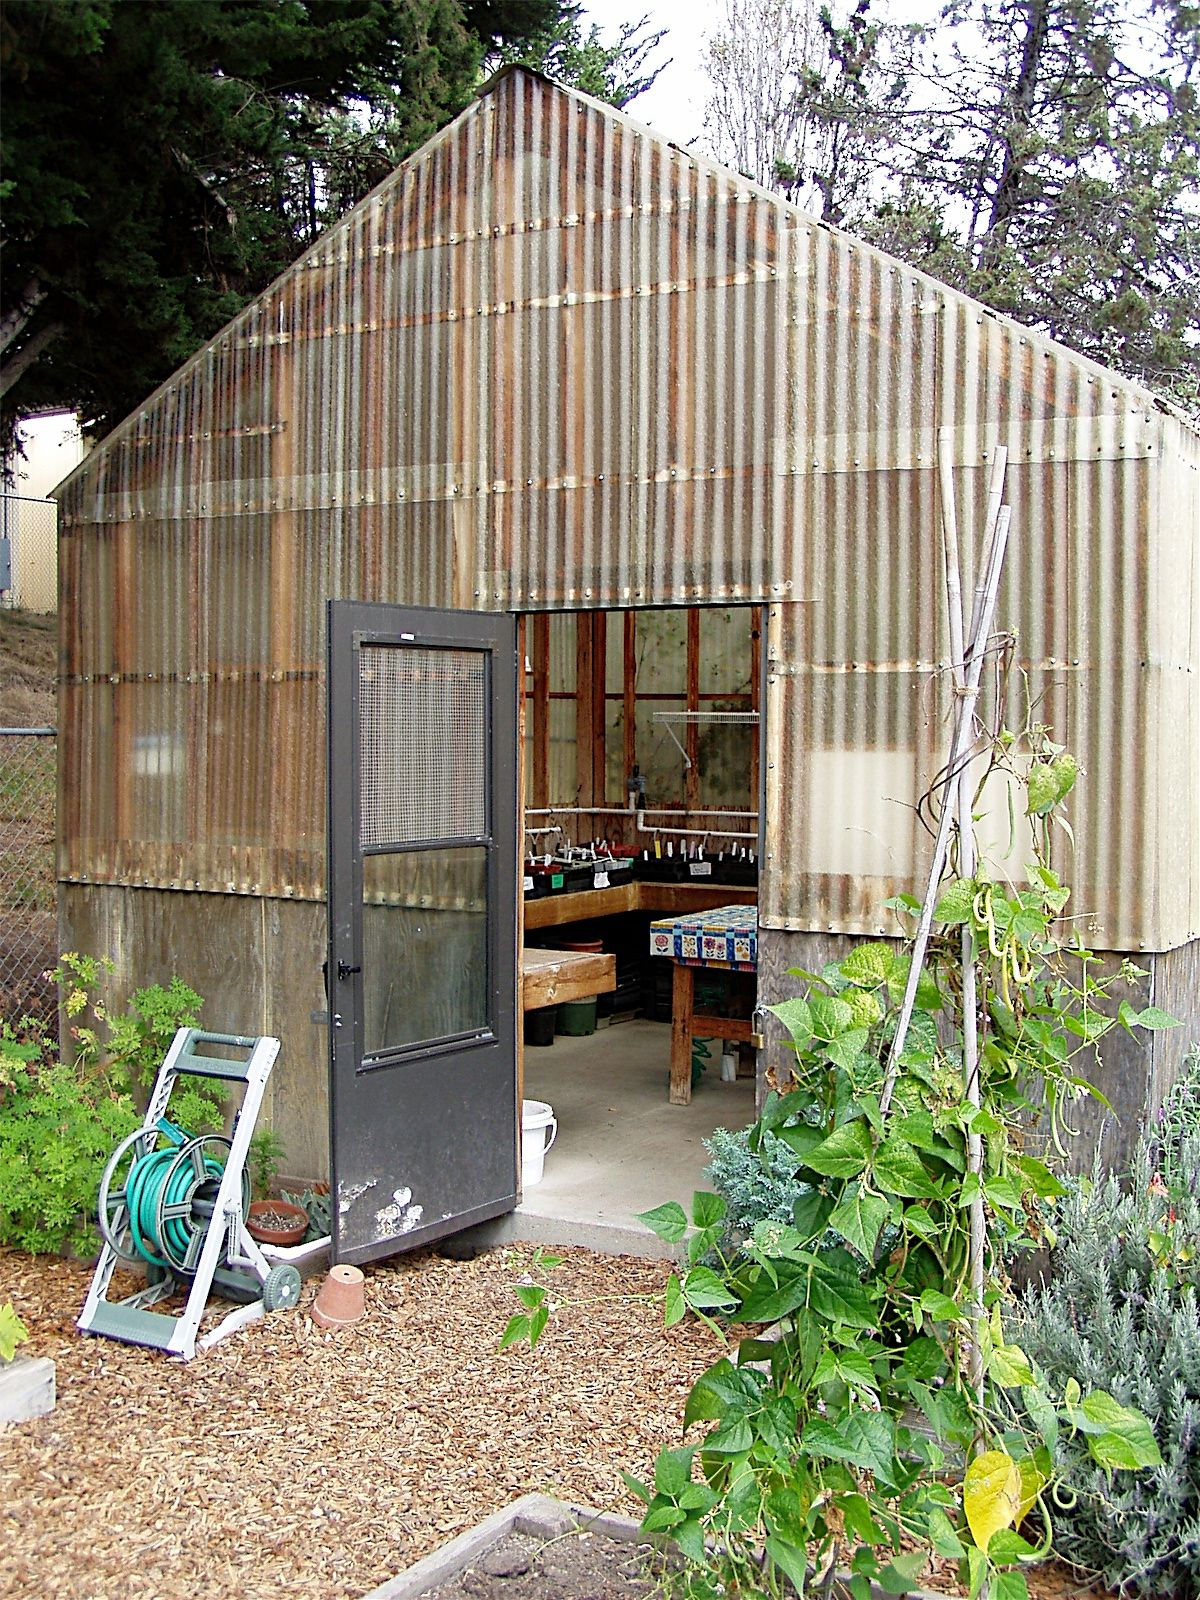 Pin By Life Lab On School Greenhouse Images Backyard Greenhouse Backyard Buildings Greenhouse Shed